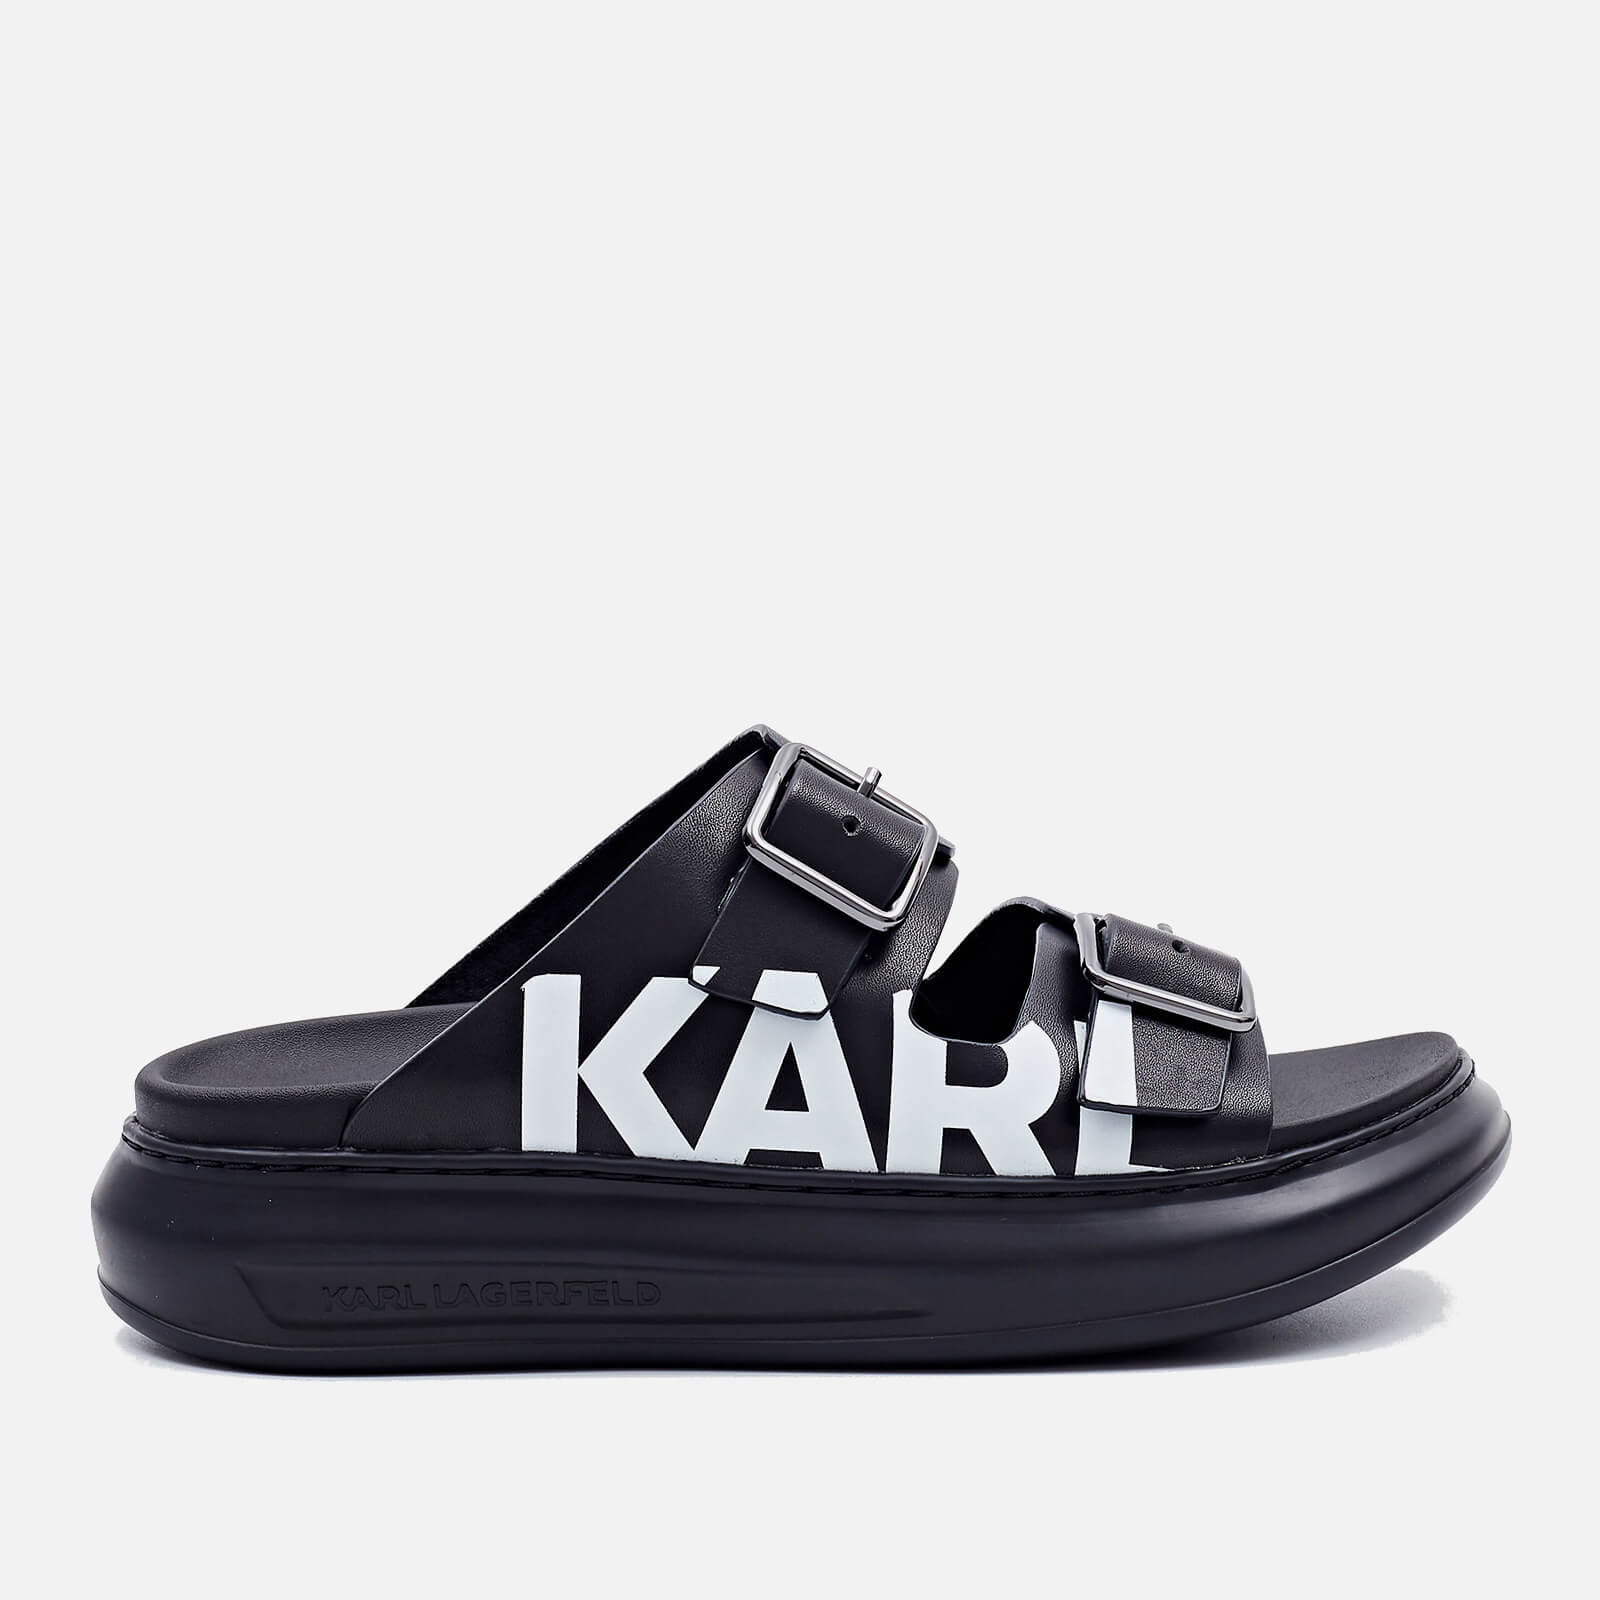 Click to view product details and reviews for Karl Lagerfeld Womens Kapri Leather Flatform Sandals Black Uk 4.